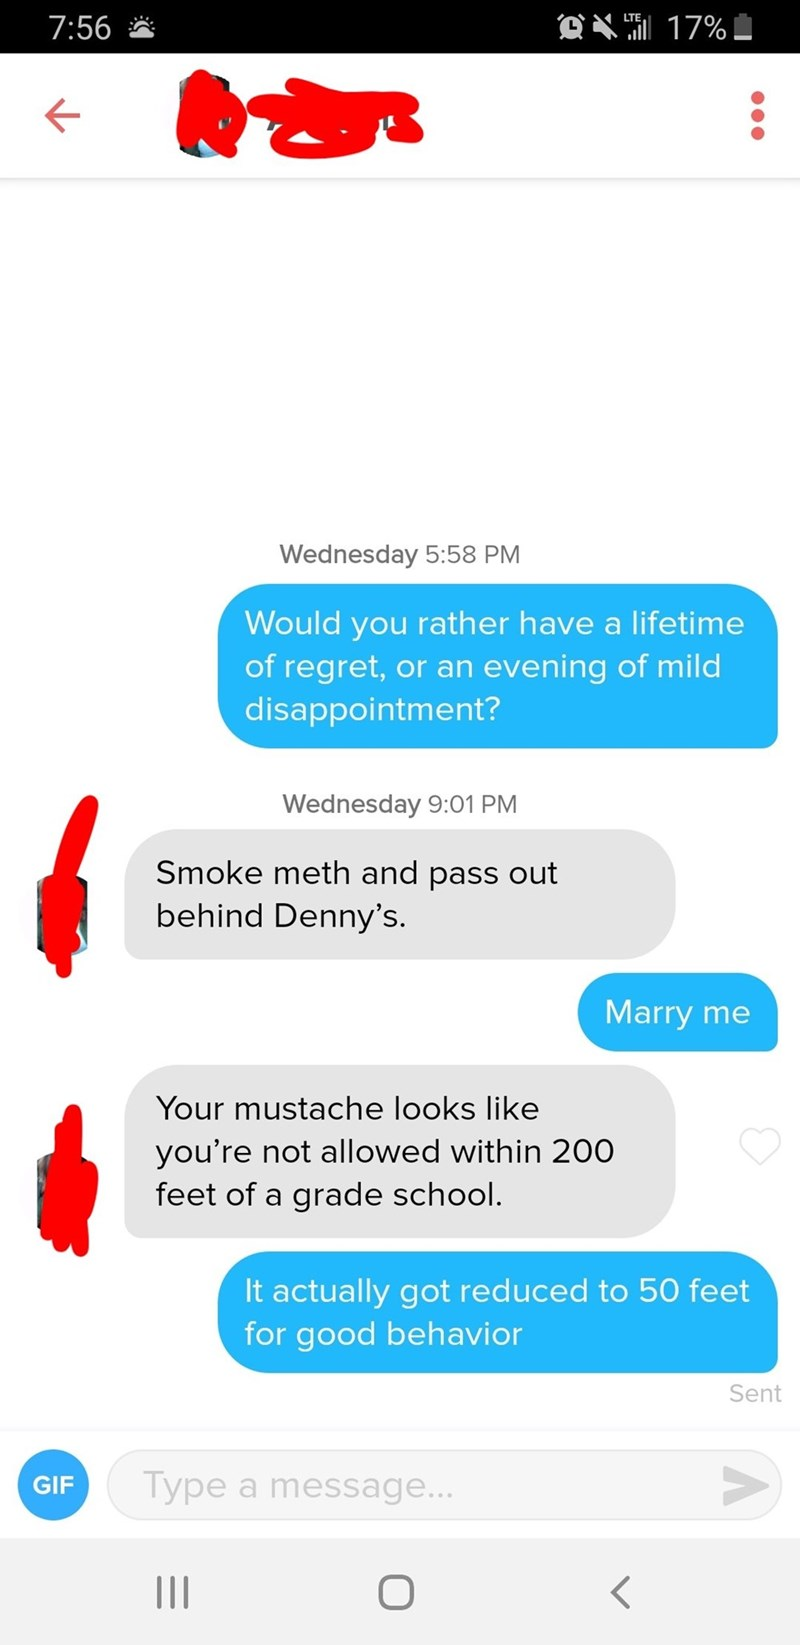 tinder messages Would you rather have a lifetime of regret, or an evening of mild disappointment? Wednesday 9:01 PM Smoke meth and pass out behind Denny's. Marry me Your mustache looks like you're not allowed within 200 feet of a grade school. It actually got reduced to 50 feet for good behavior Sent Type a message... GIF